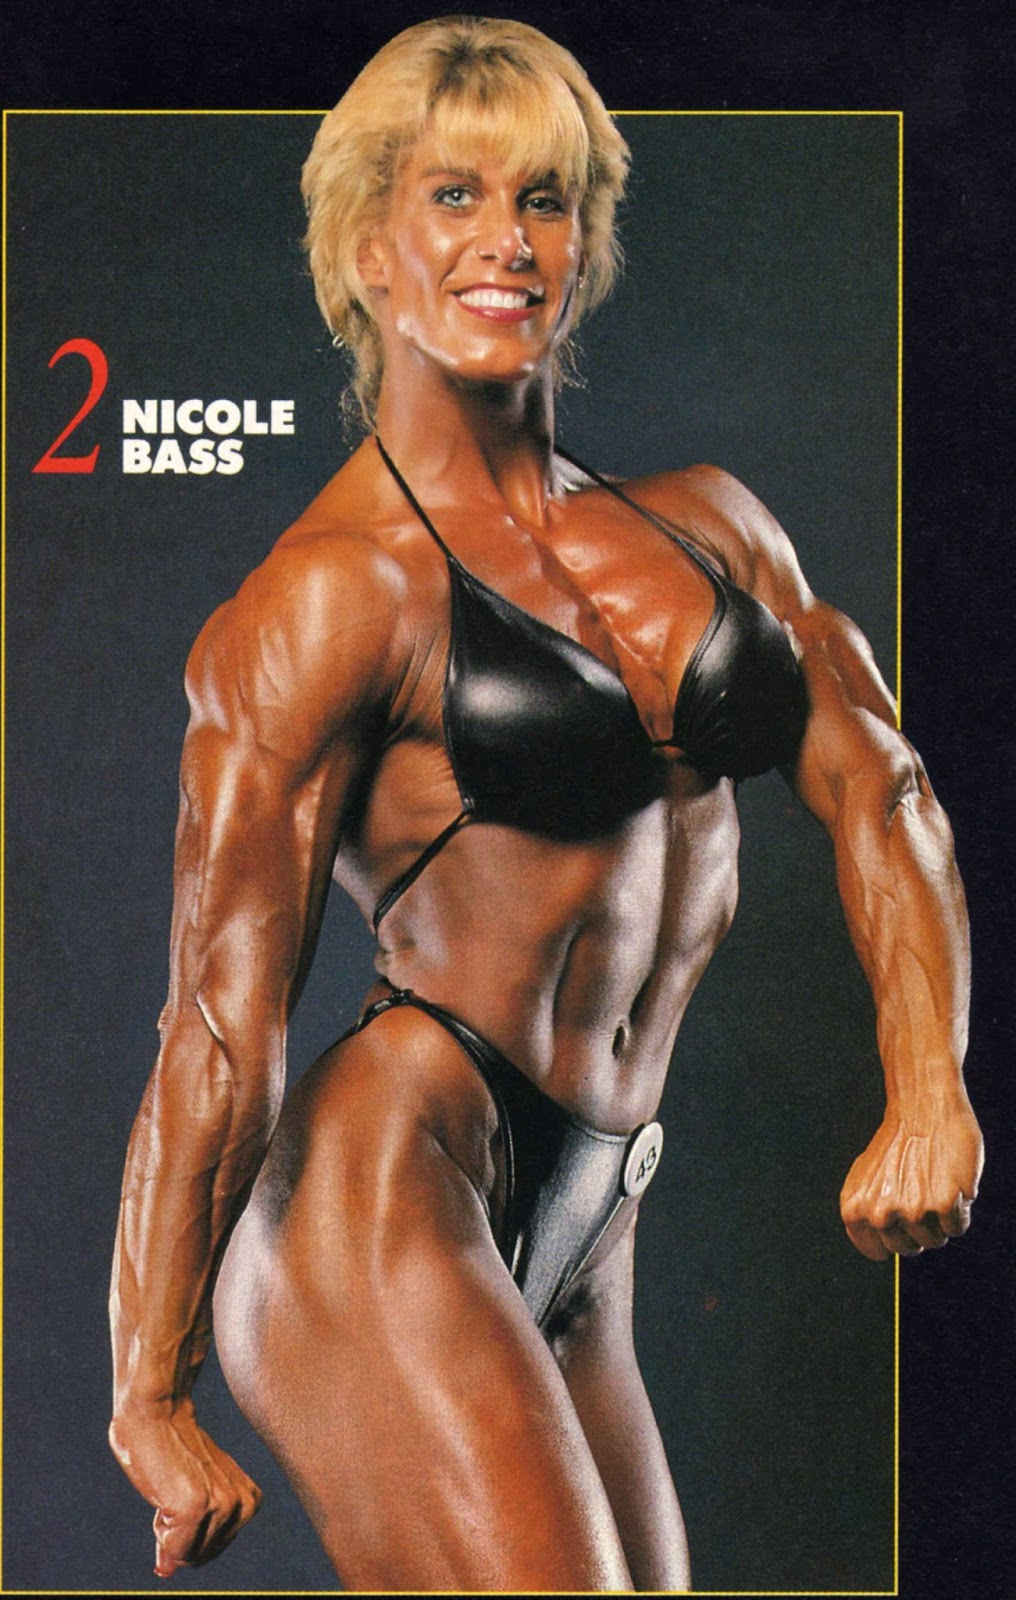 American Female Bodybuilder Nicole Bass - The Best